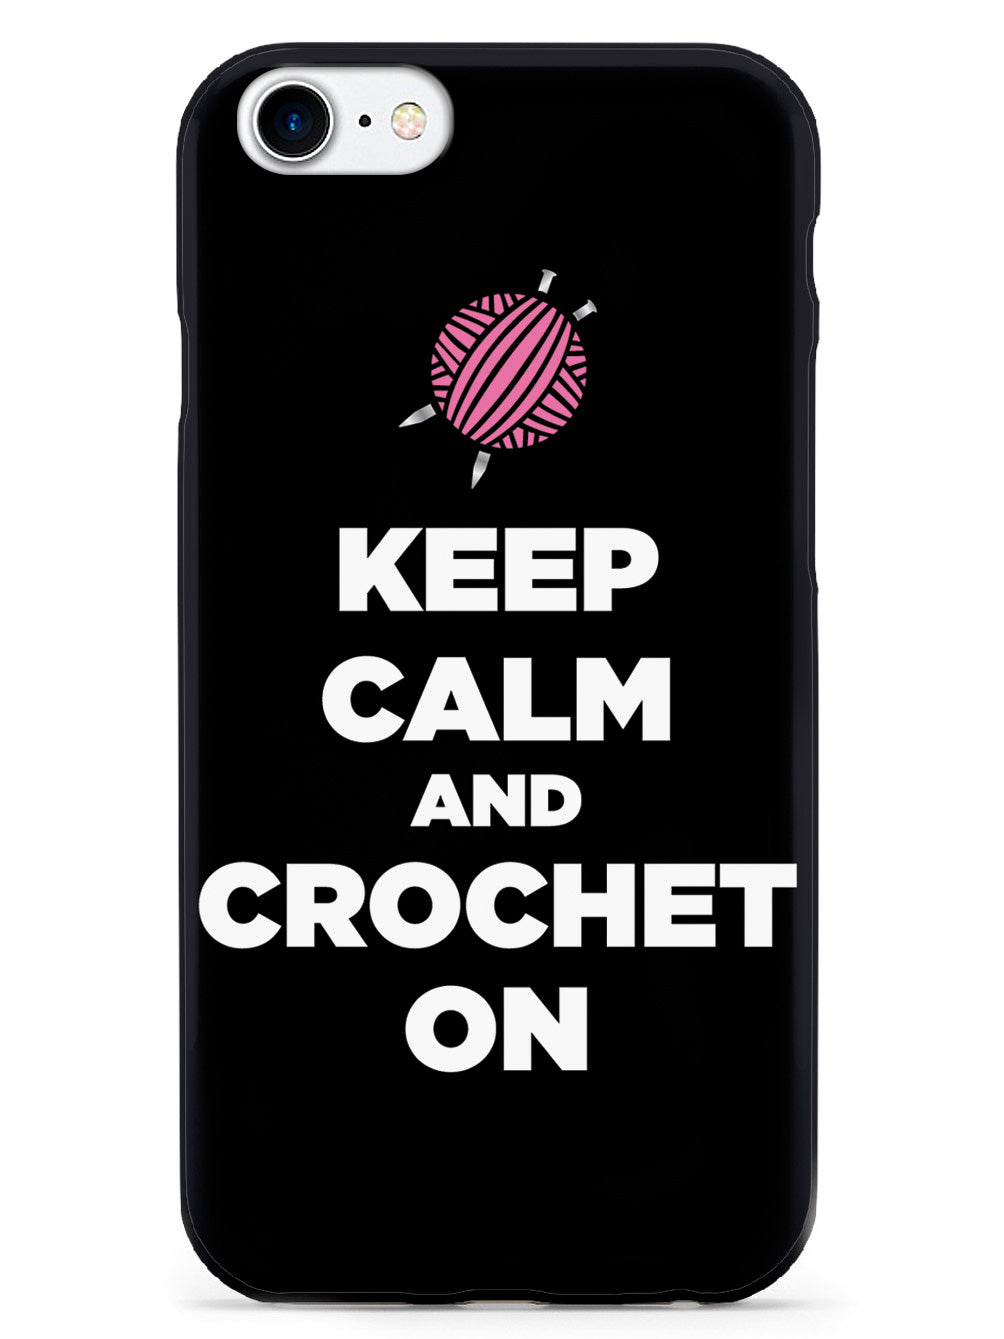 Keep Calm And Crochet On - Black Case